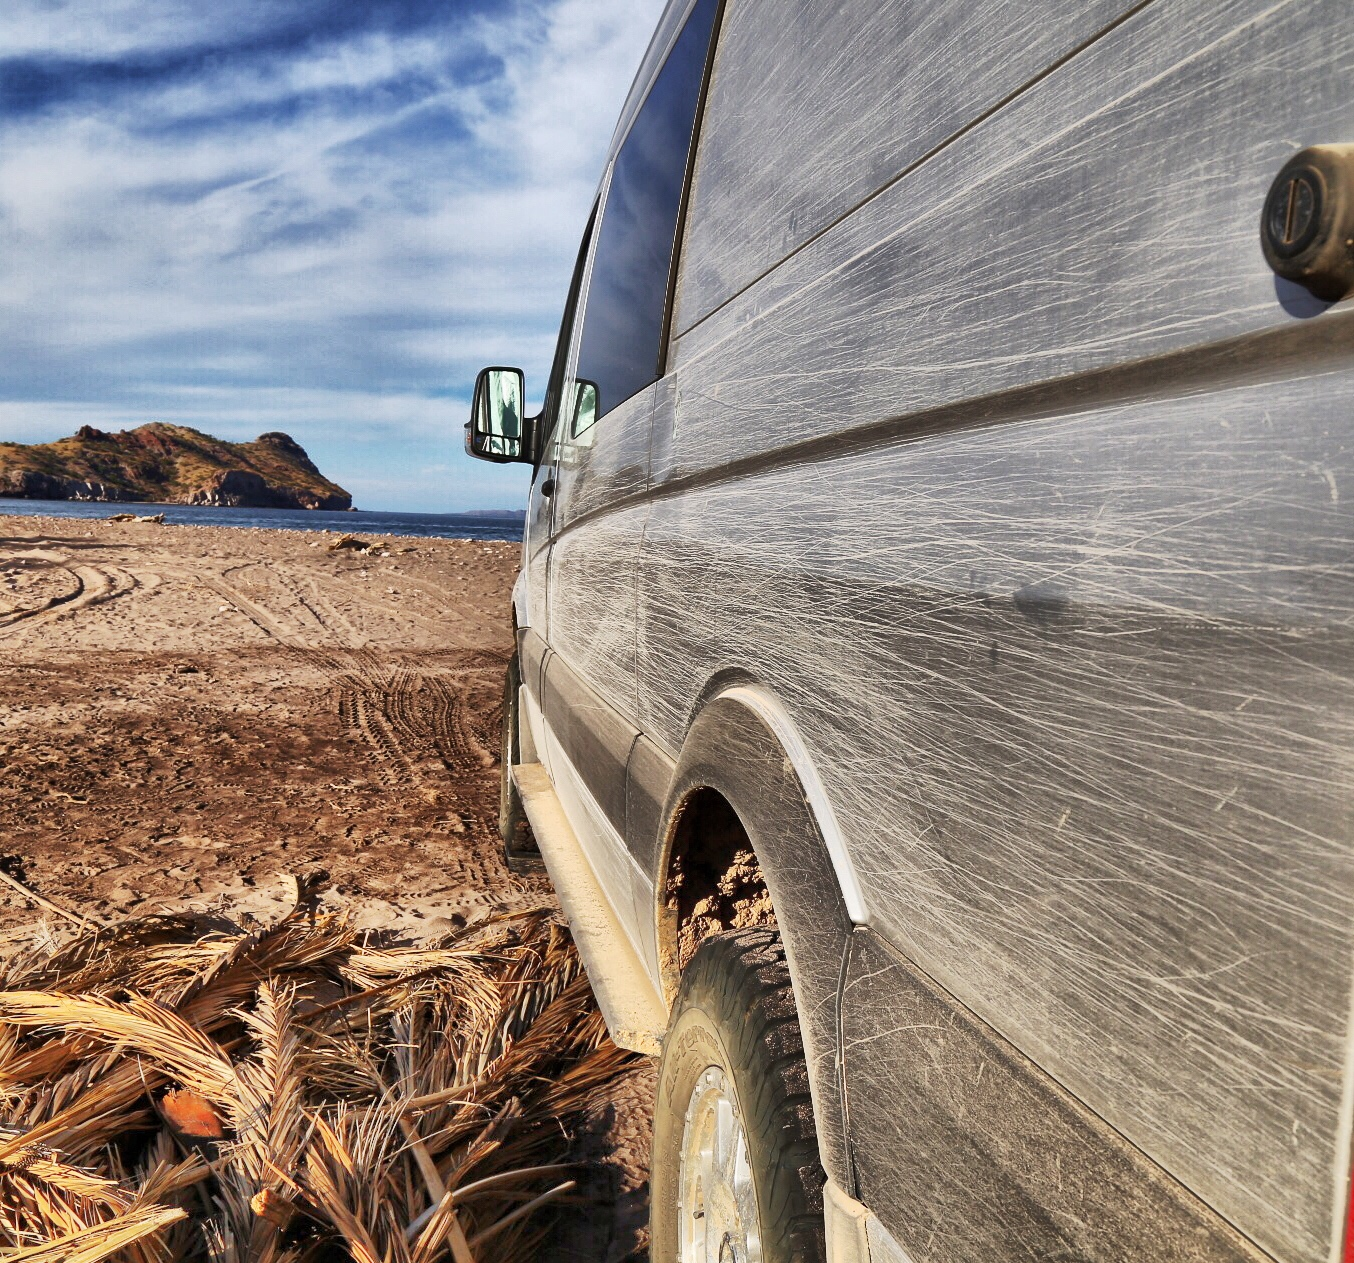 Most dirt roads in Baja are narrow with all kind of thorny branches. Don't take backroads if you value a nice paint job.